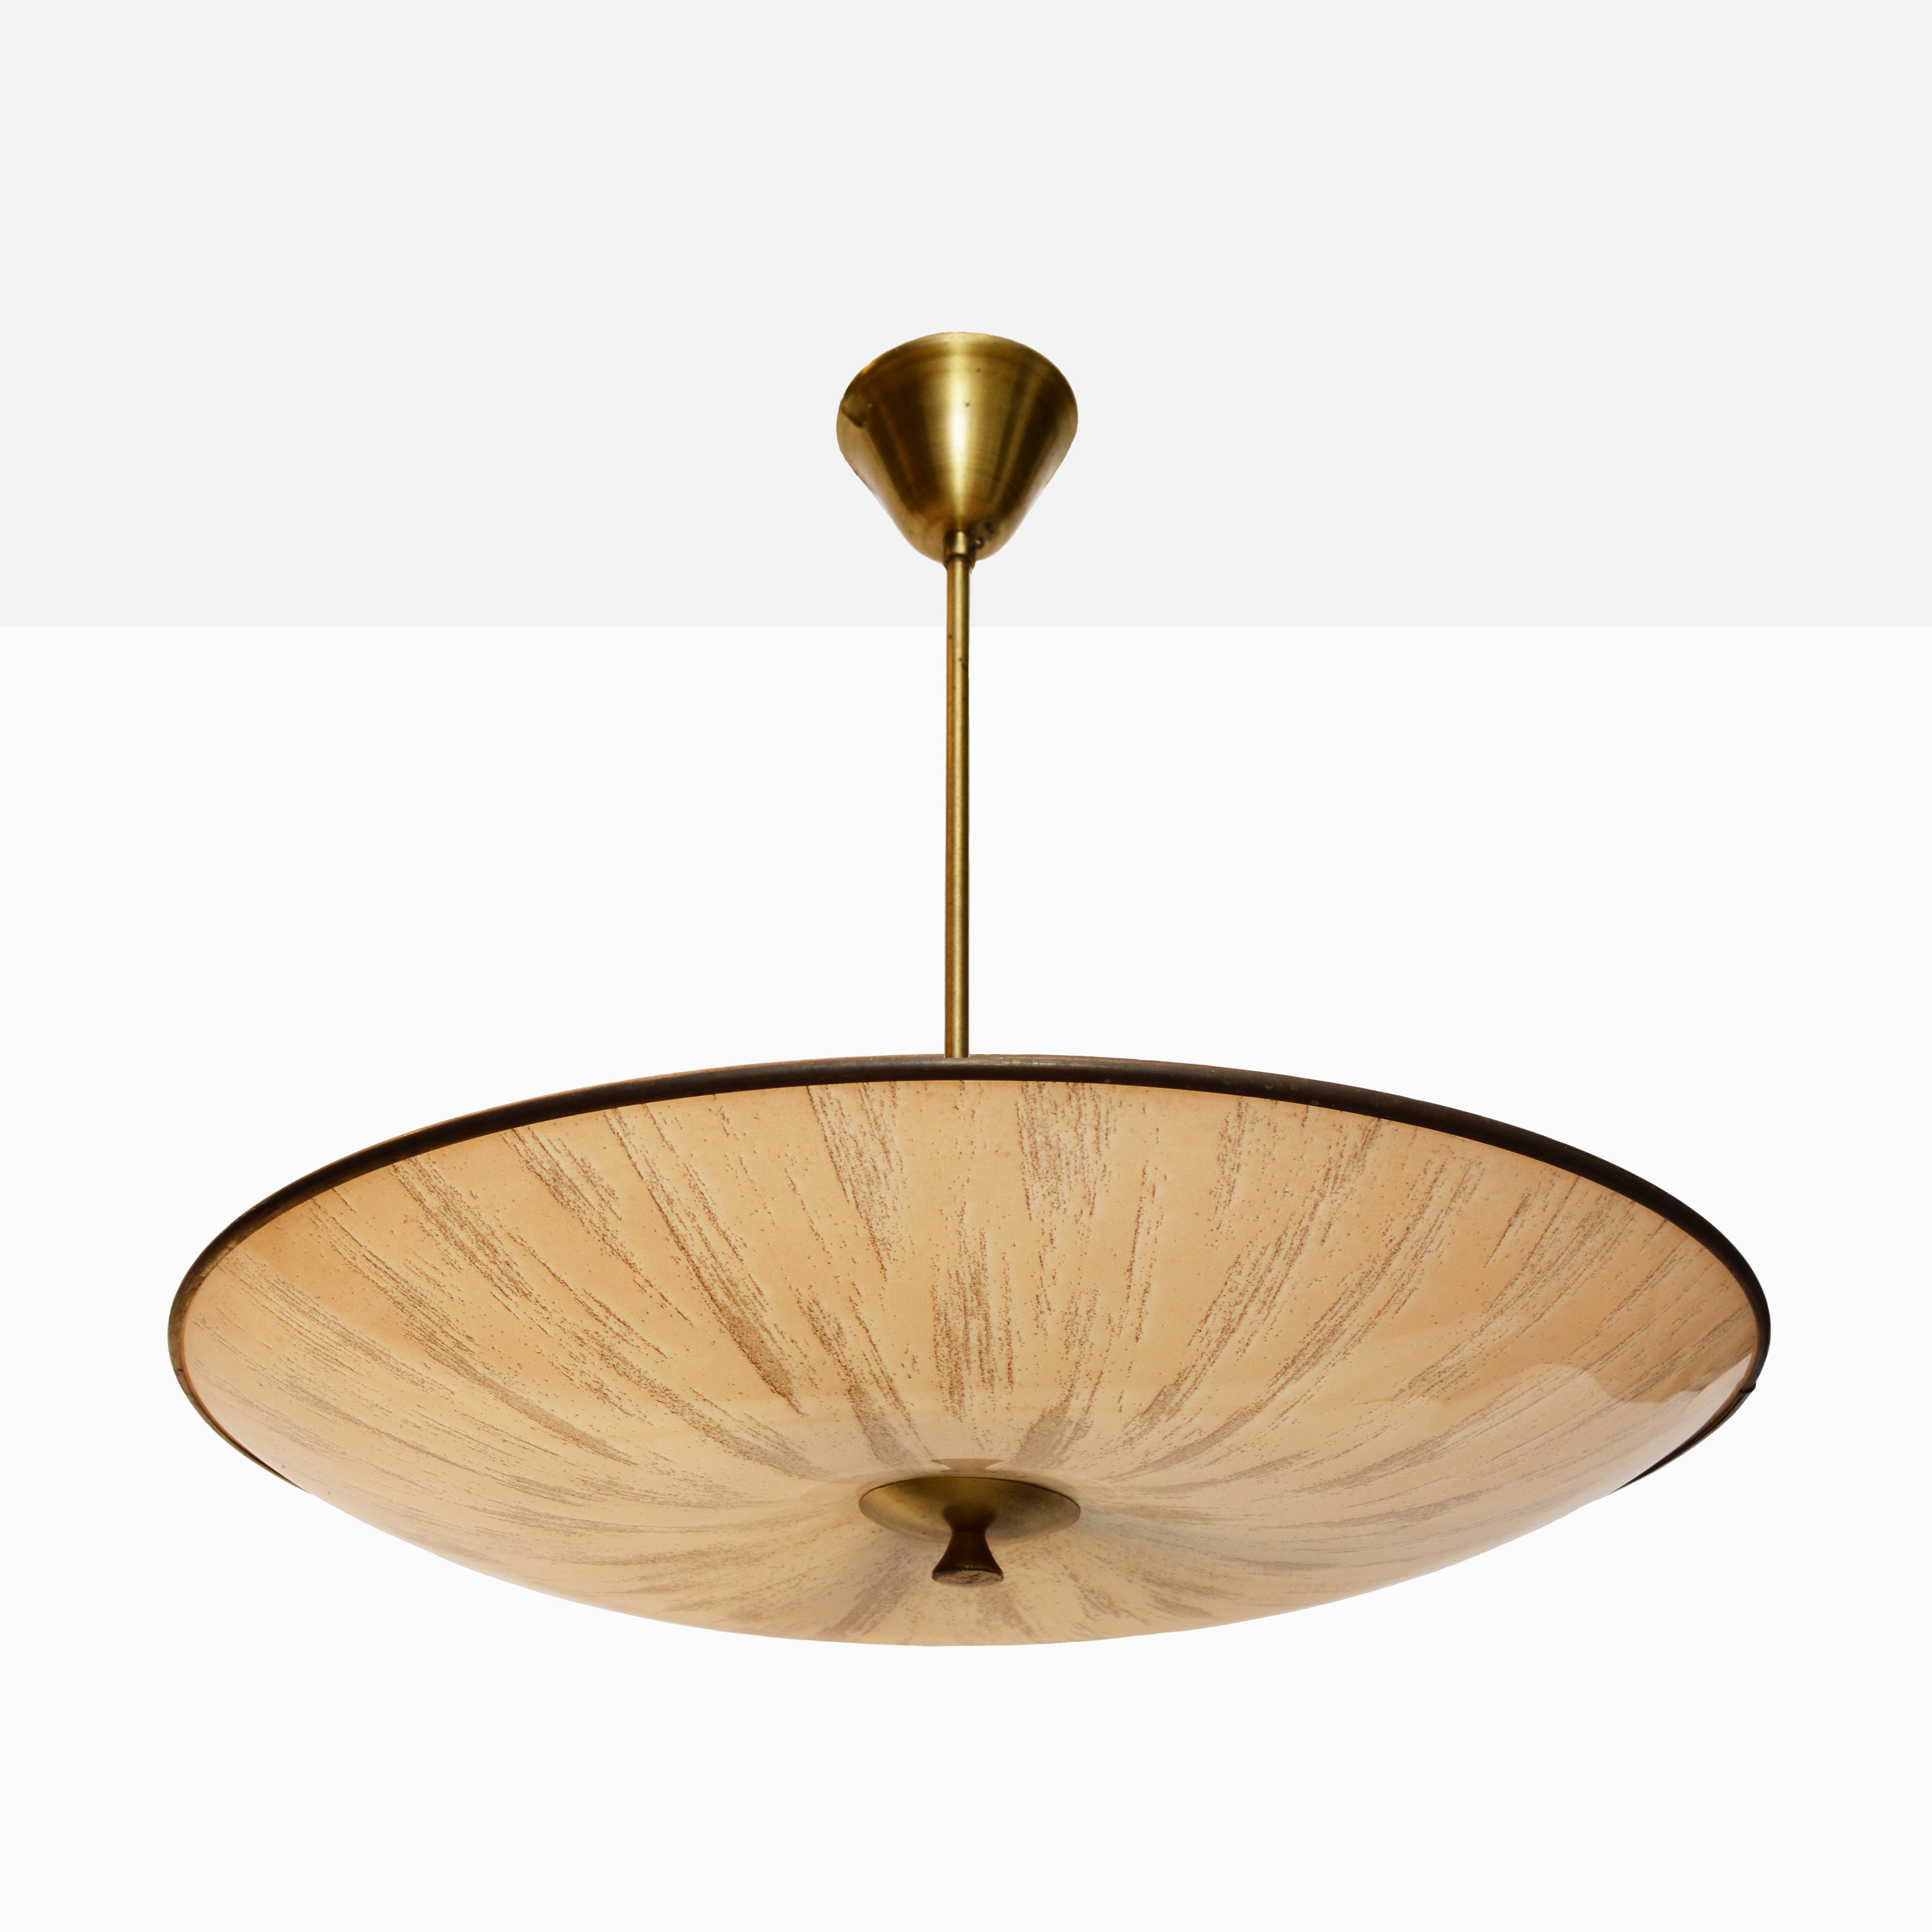 deco pendant f chandeliers at lighting id furniture hoop ceiling circa etched double spanish ceilings master art glass lights circle light brass